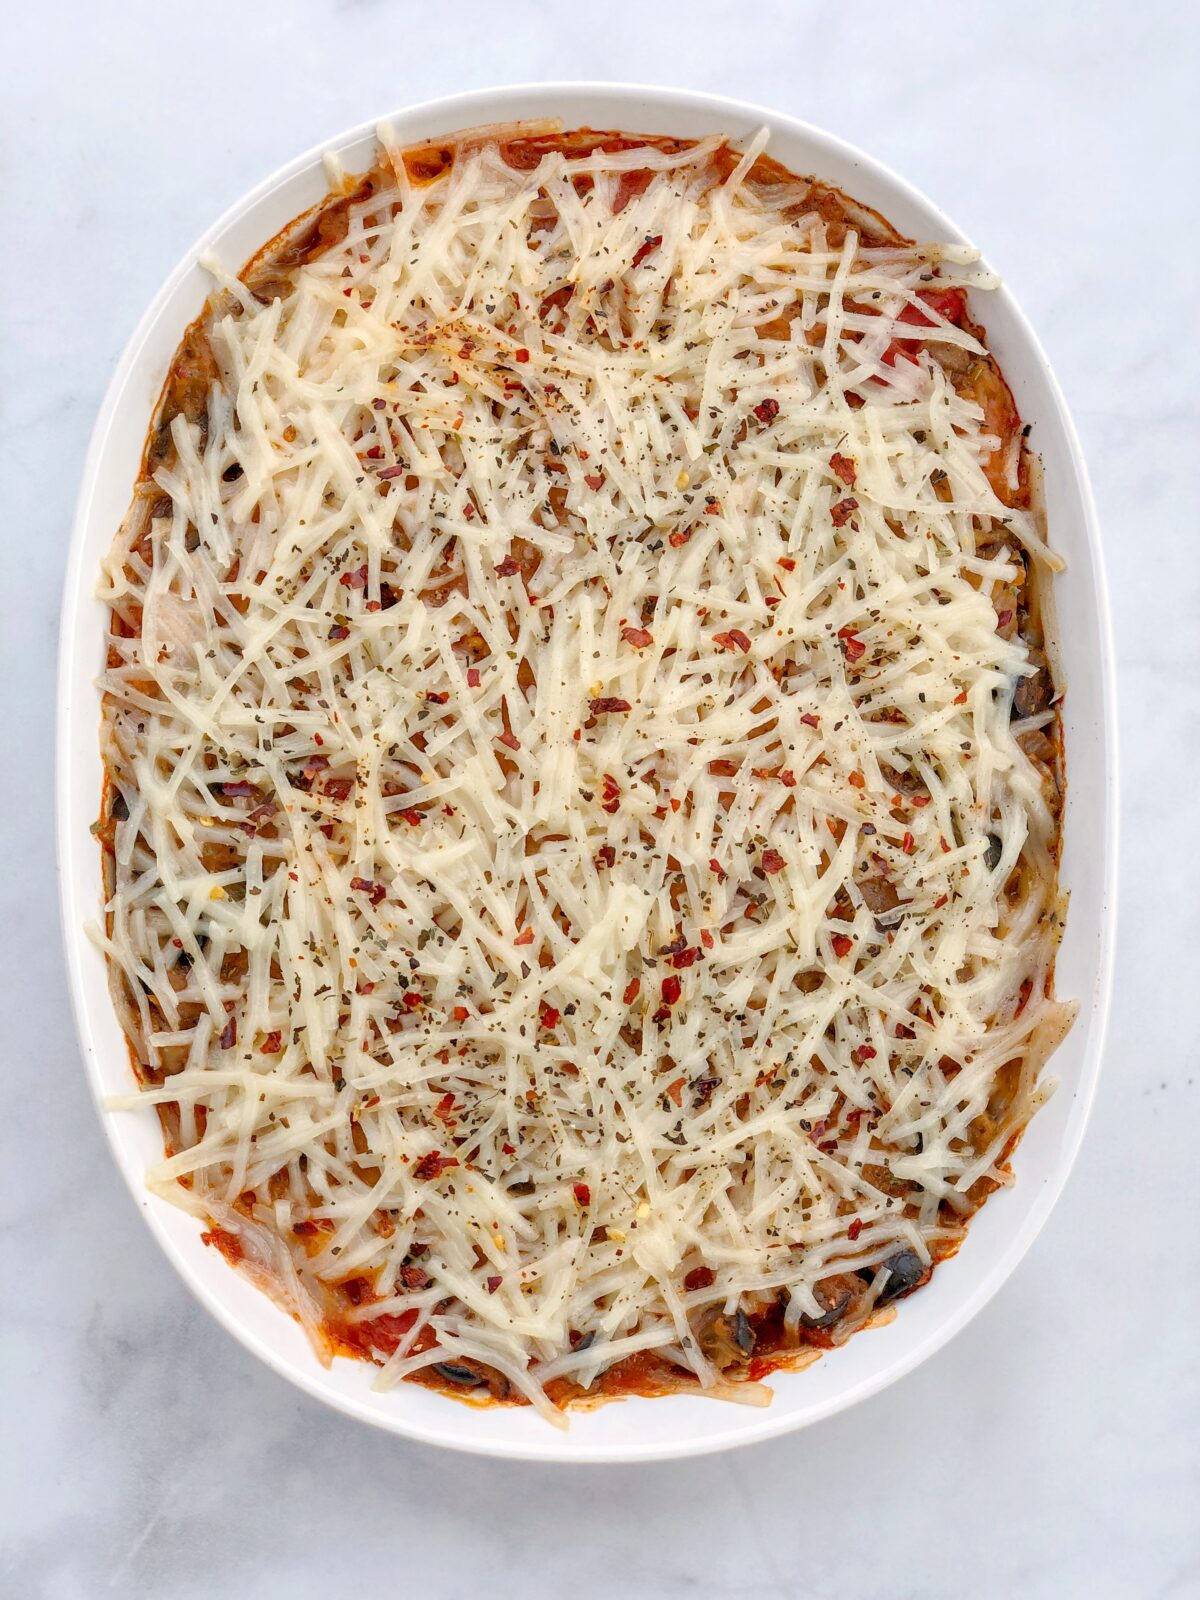 6-Ingredient Spaghetti Squash Pizza Casserole is dairy-free, egg-free, gluten-free and vegan. This dinner casserole is low-carb, hearty, and healthy!